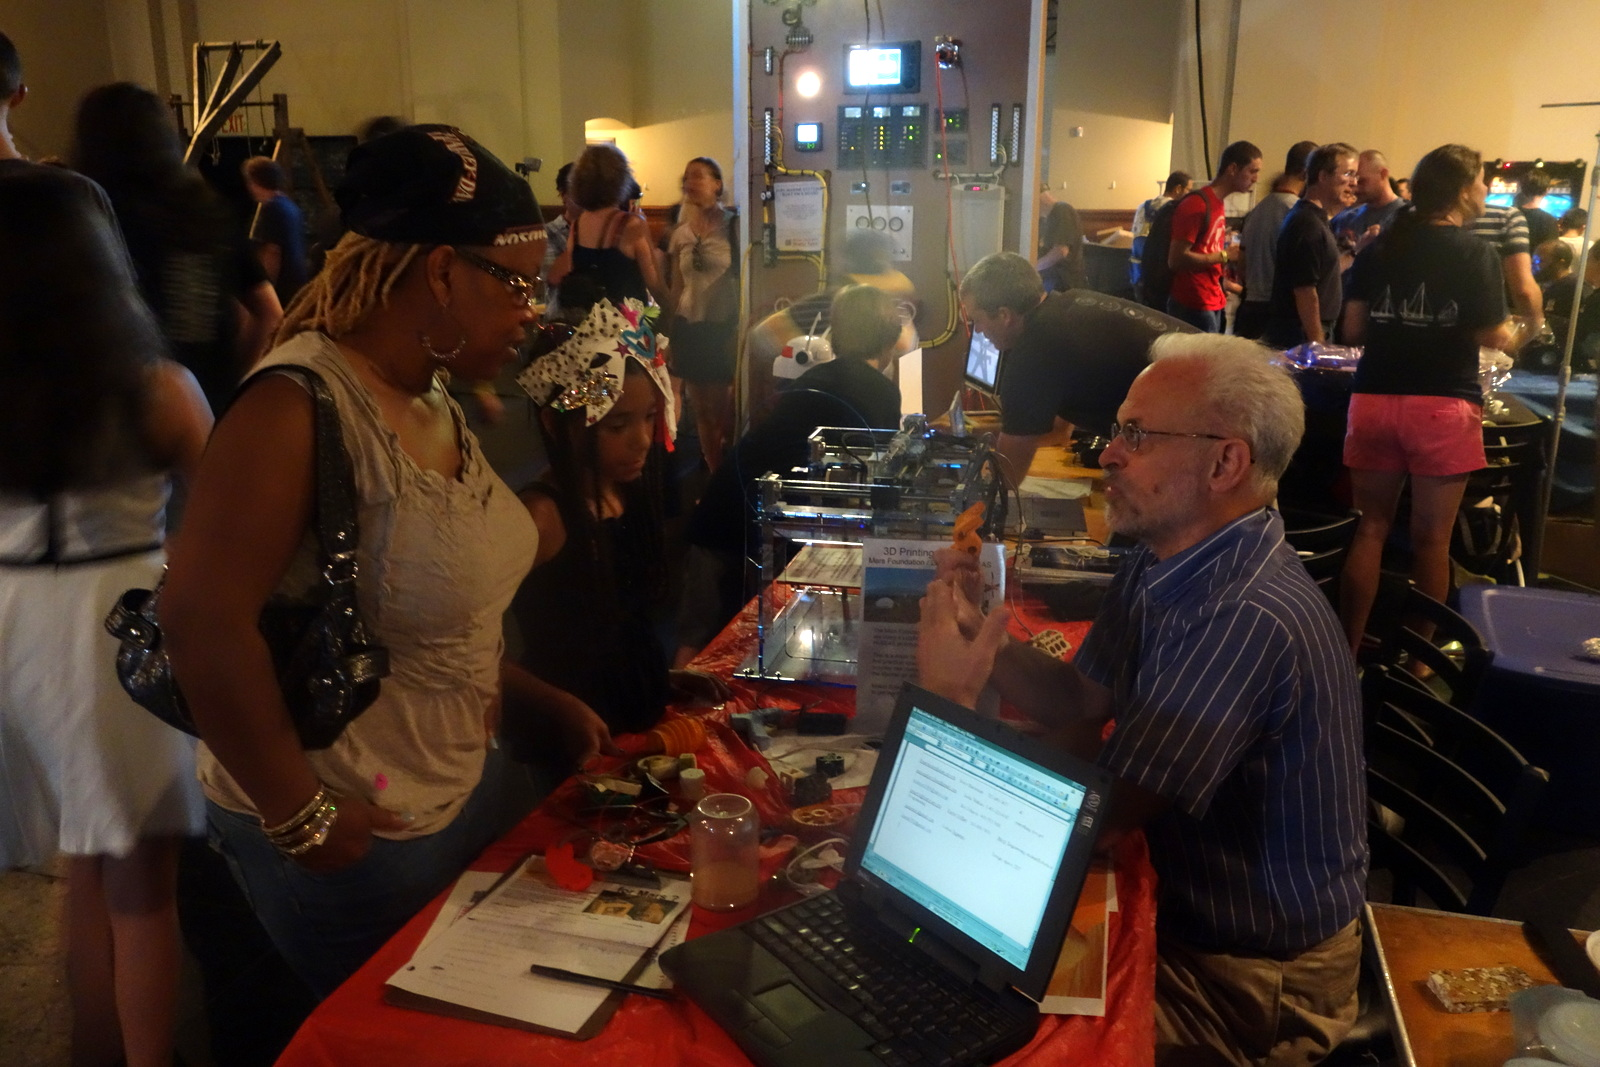 Bruce Mackenzie talks with folk about the prospect of 3D printing a future Mars settlement. I'm not kidding.